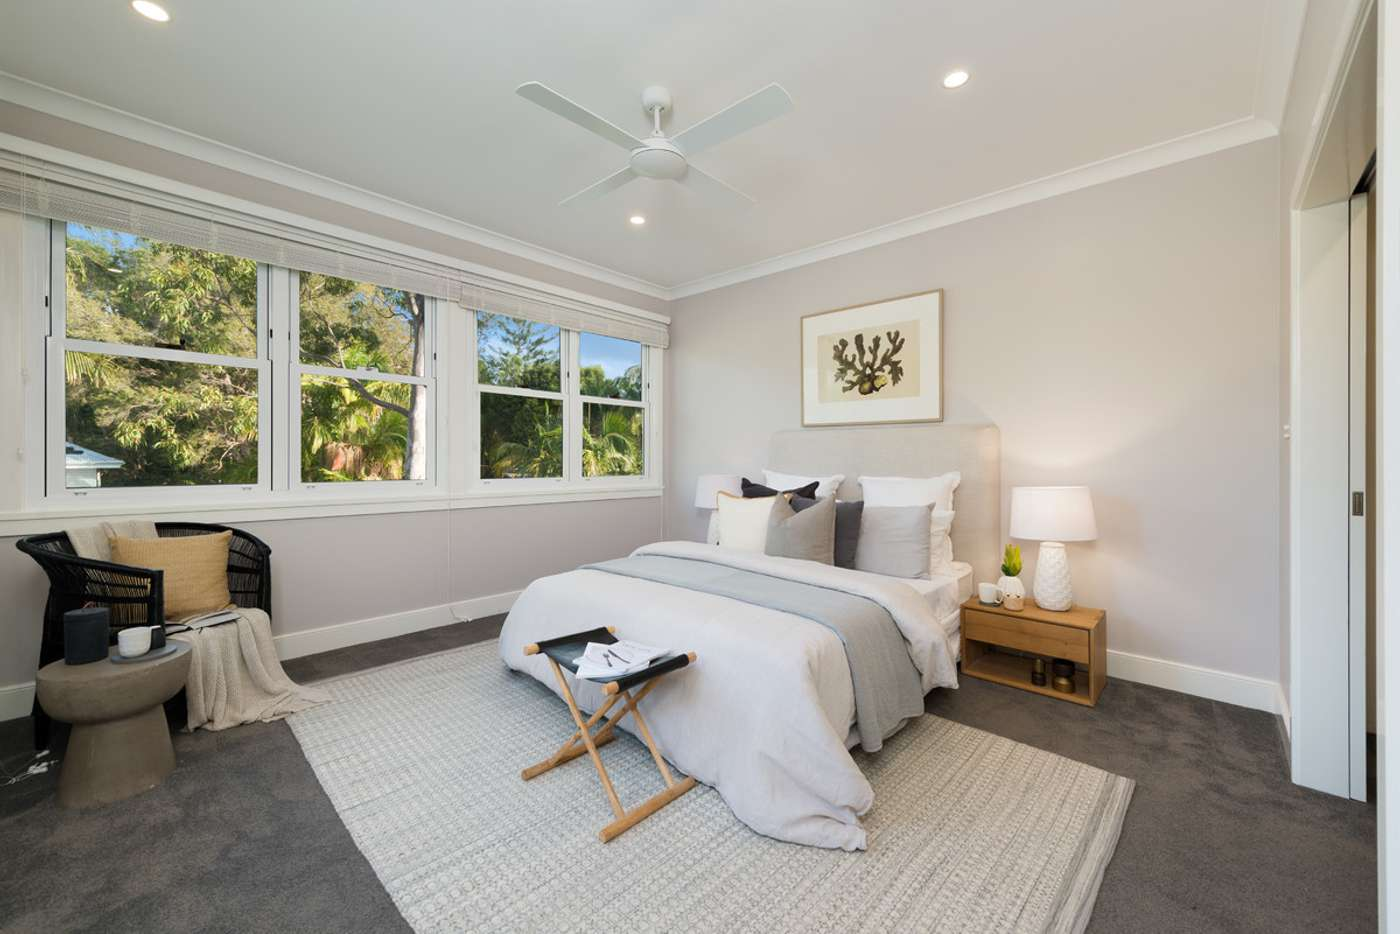 Fifth view of Homely house listing, 59a Bardo Road, Newport NSW 2106